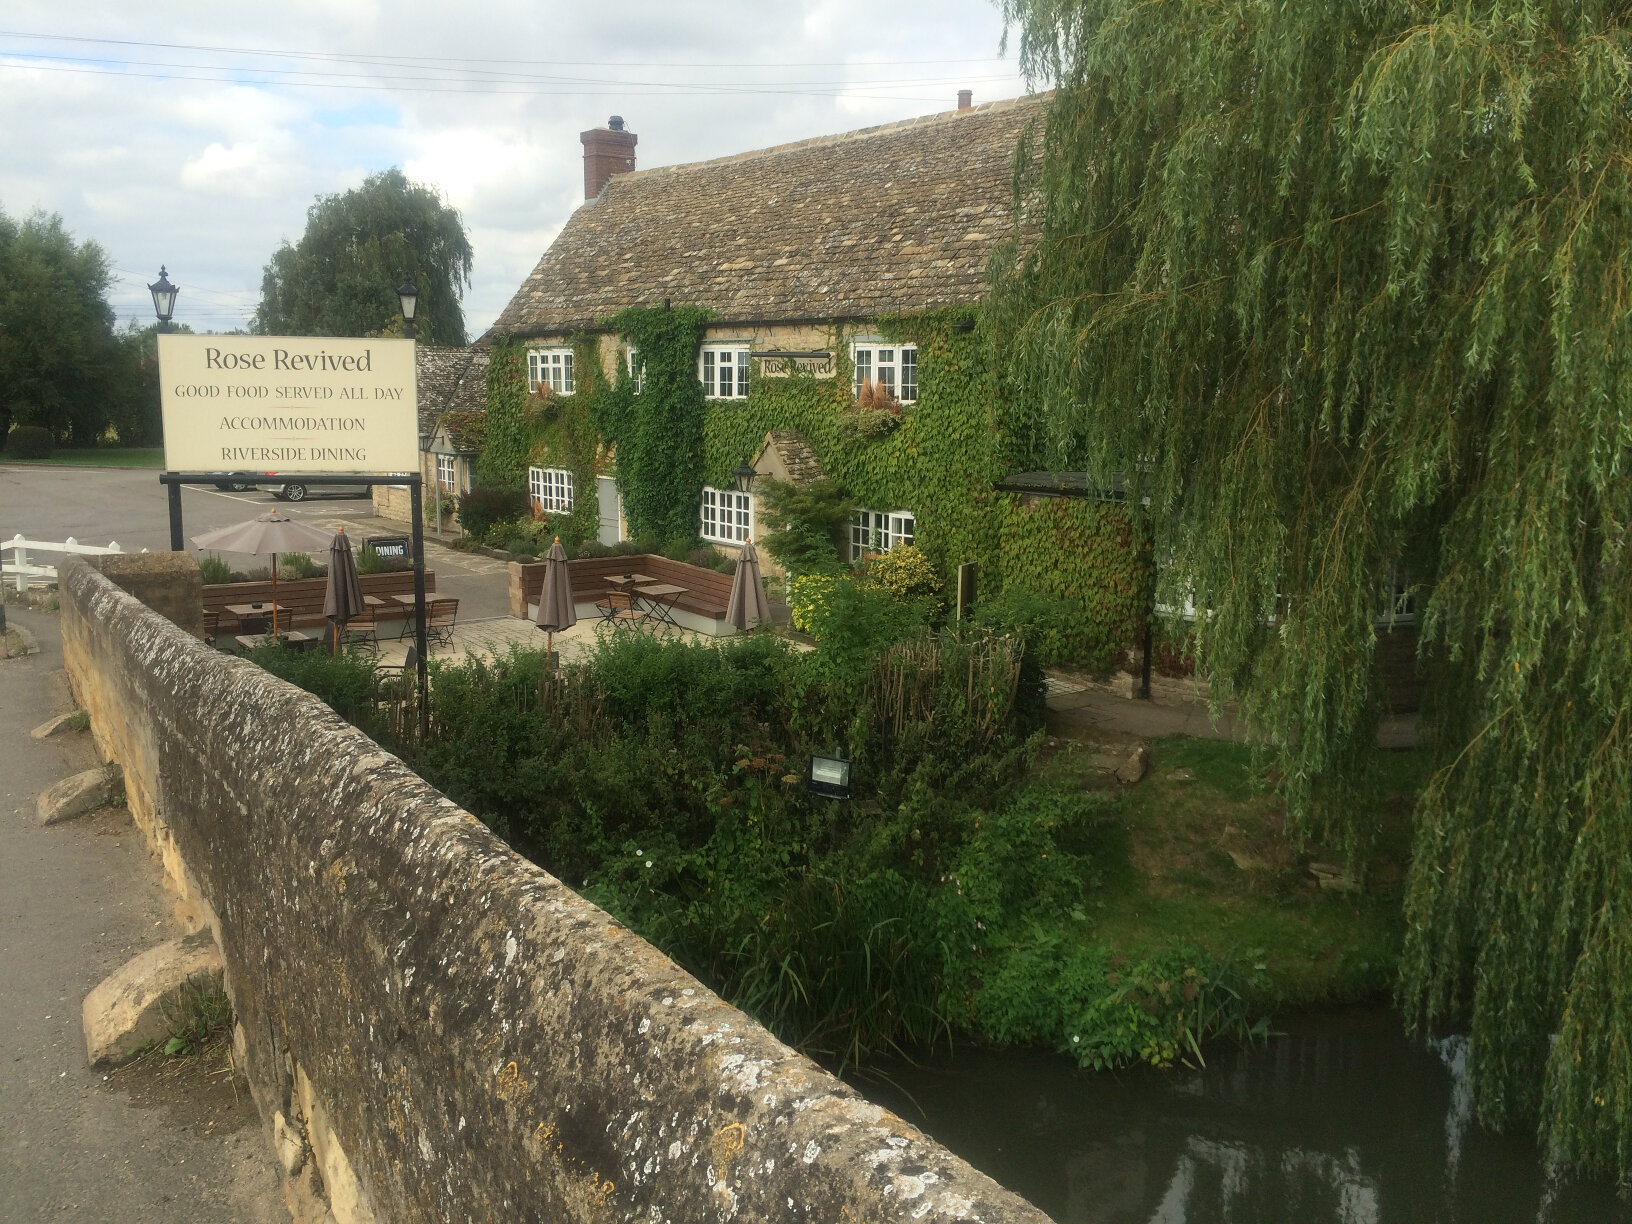 From Lechlade to Newbridge (62)